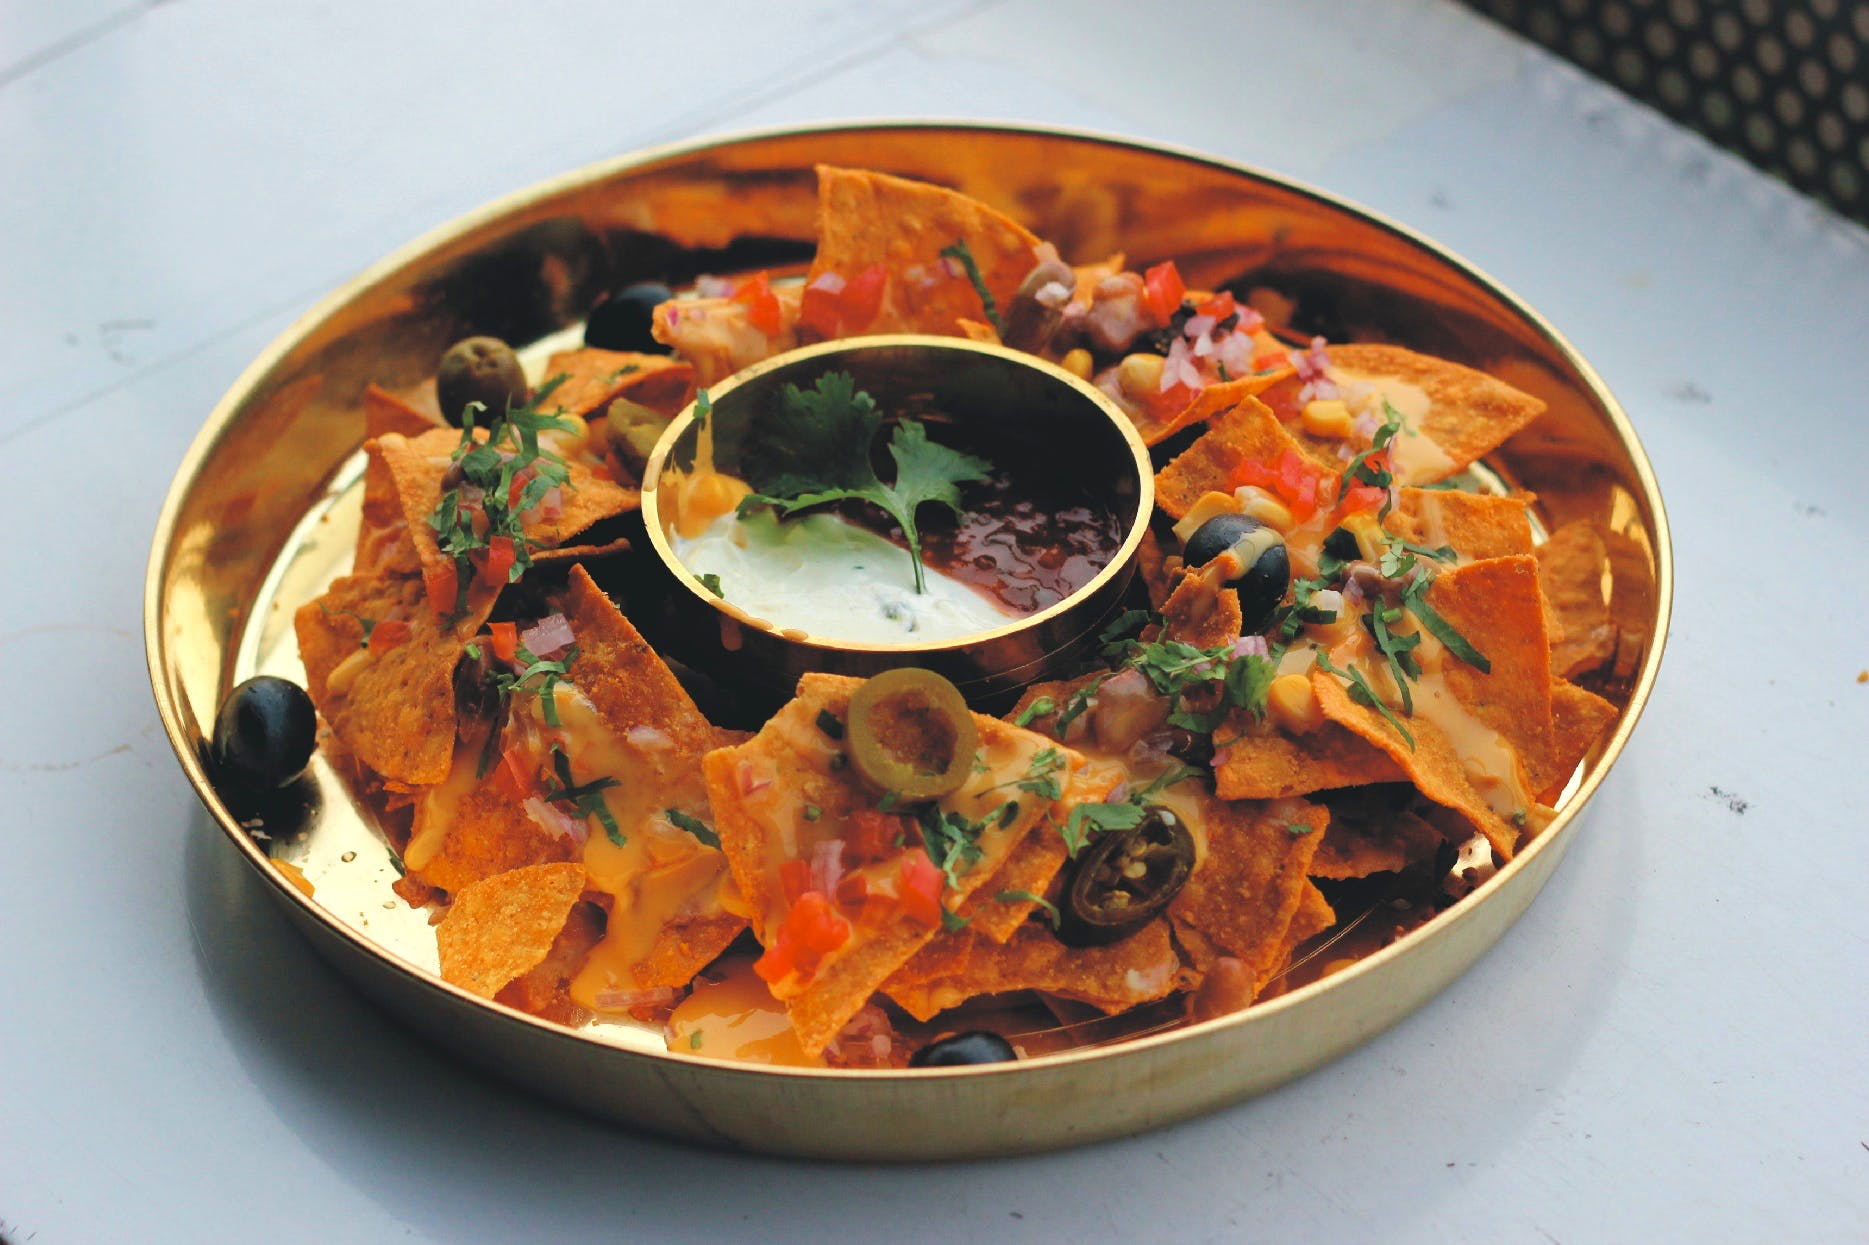 Food,Cuisine,Dish,Ingredient,Recipe,Produce,Meat,Nachos,Curry,Vegetarian food